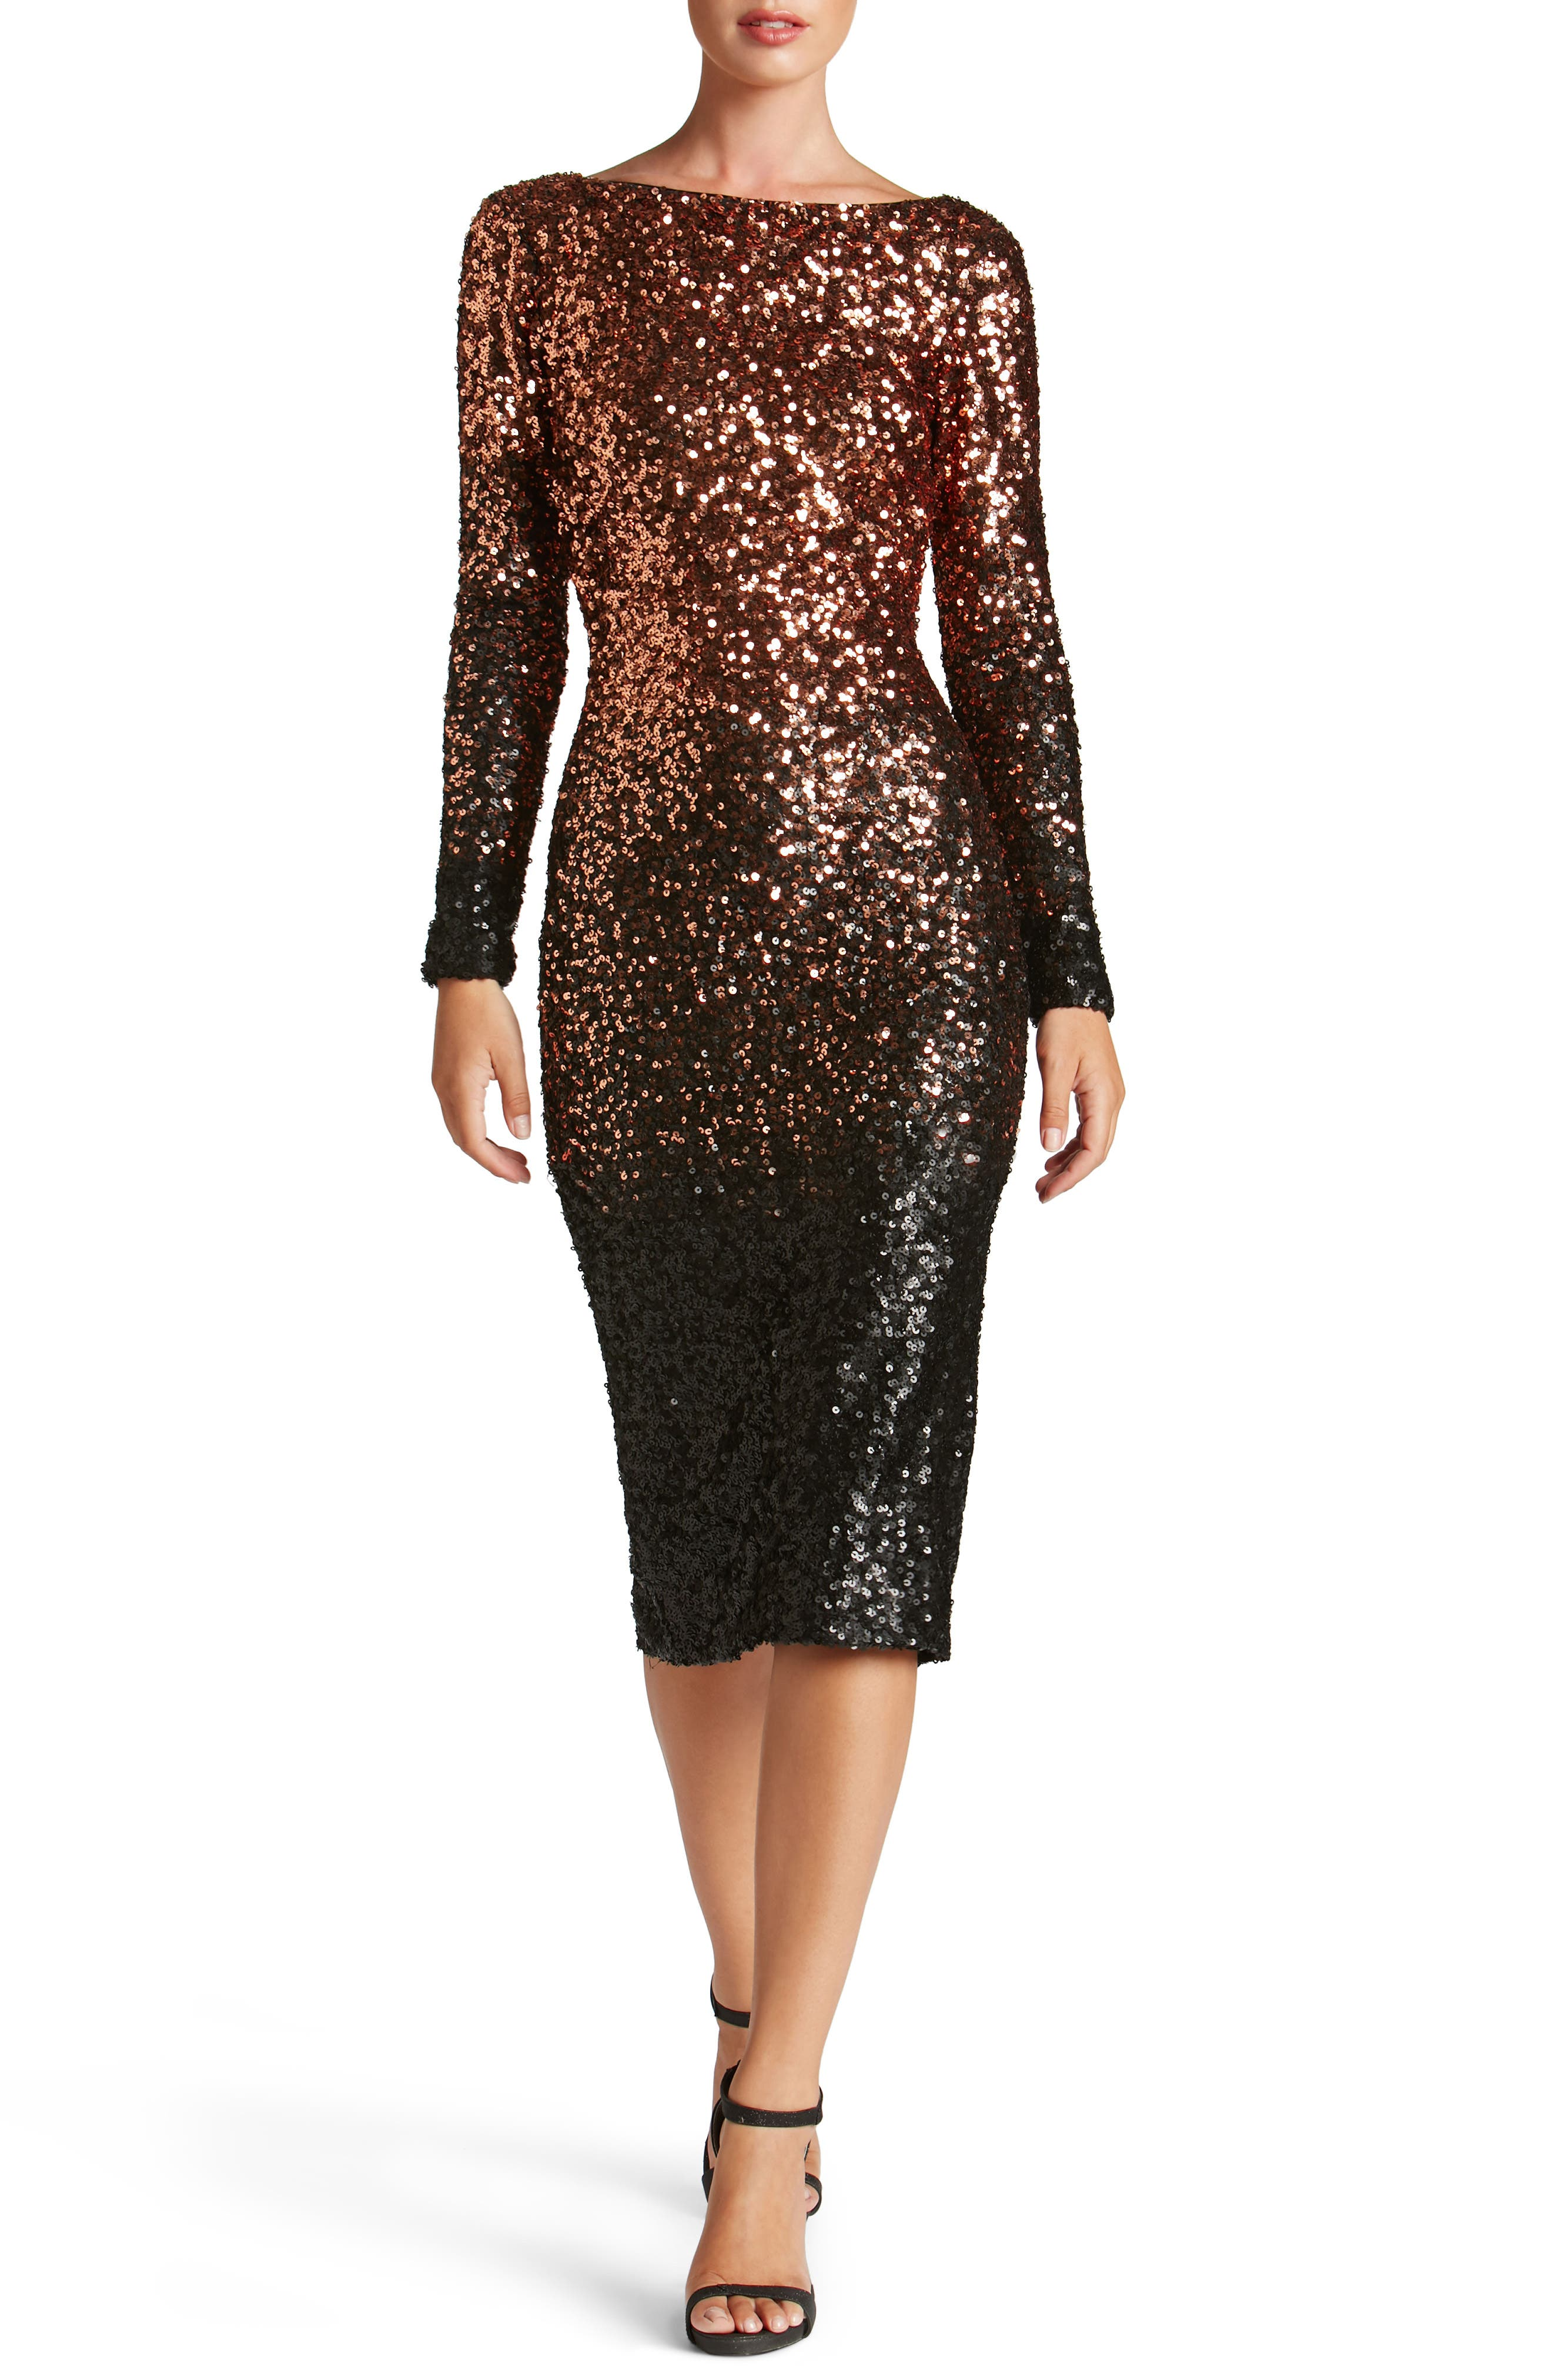 Main Image - Dress the Population Emery Ombré Sequin Body-Con Dress